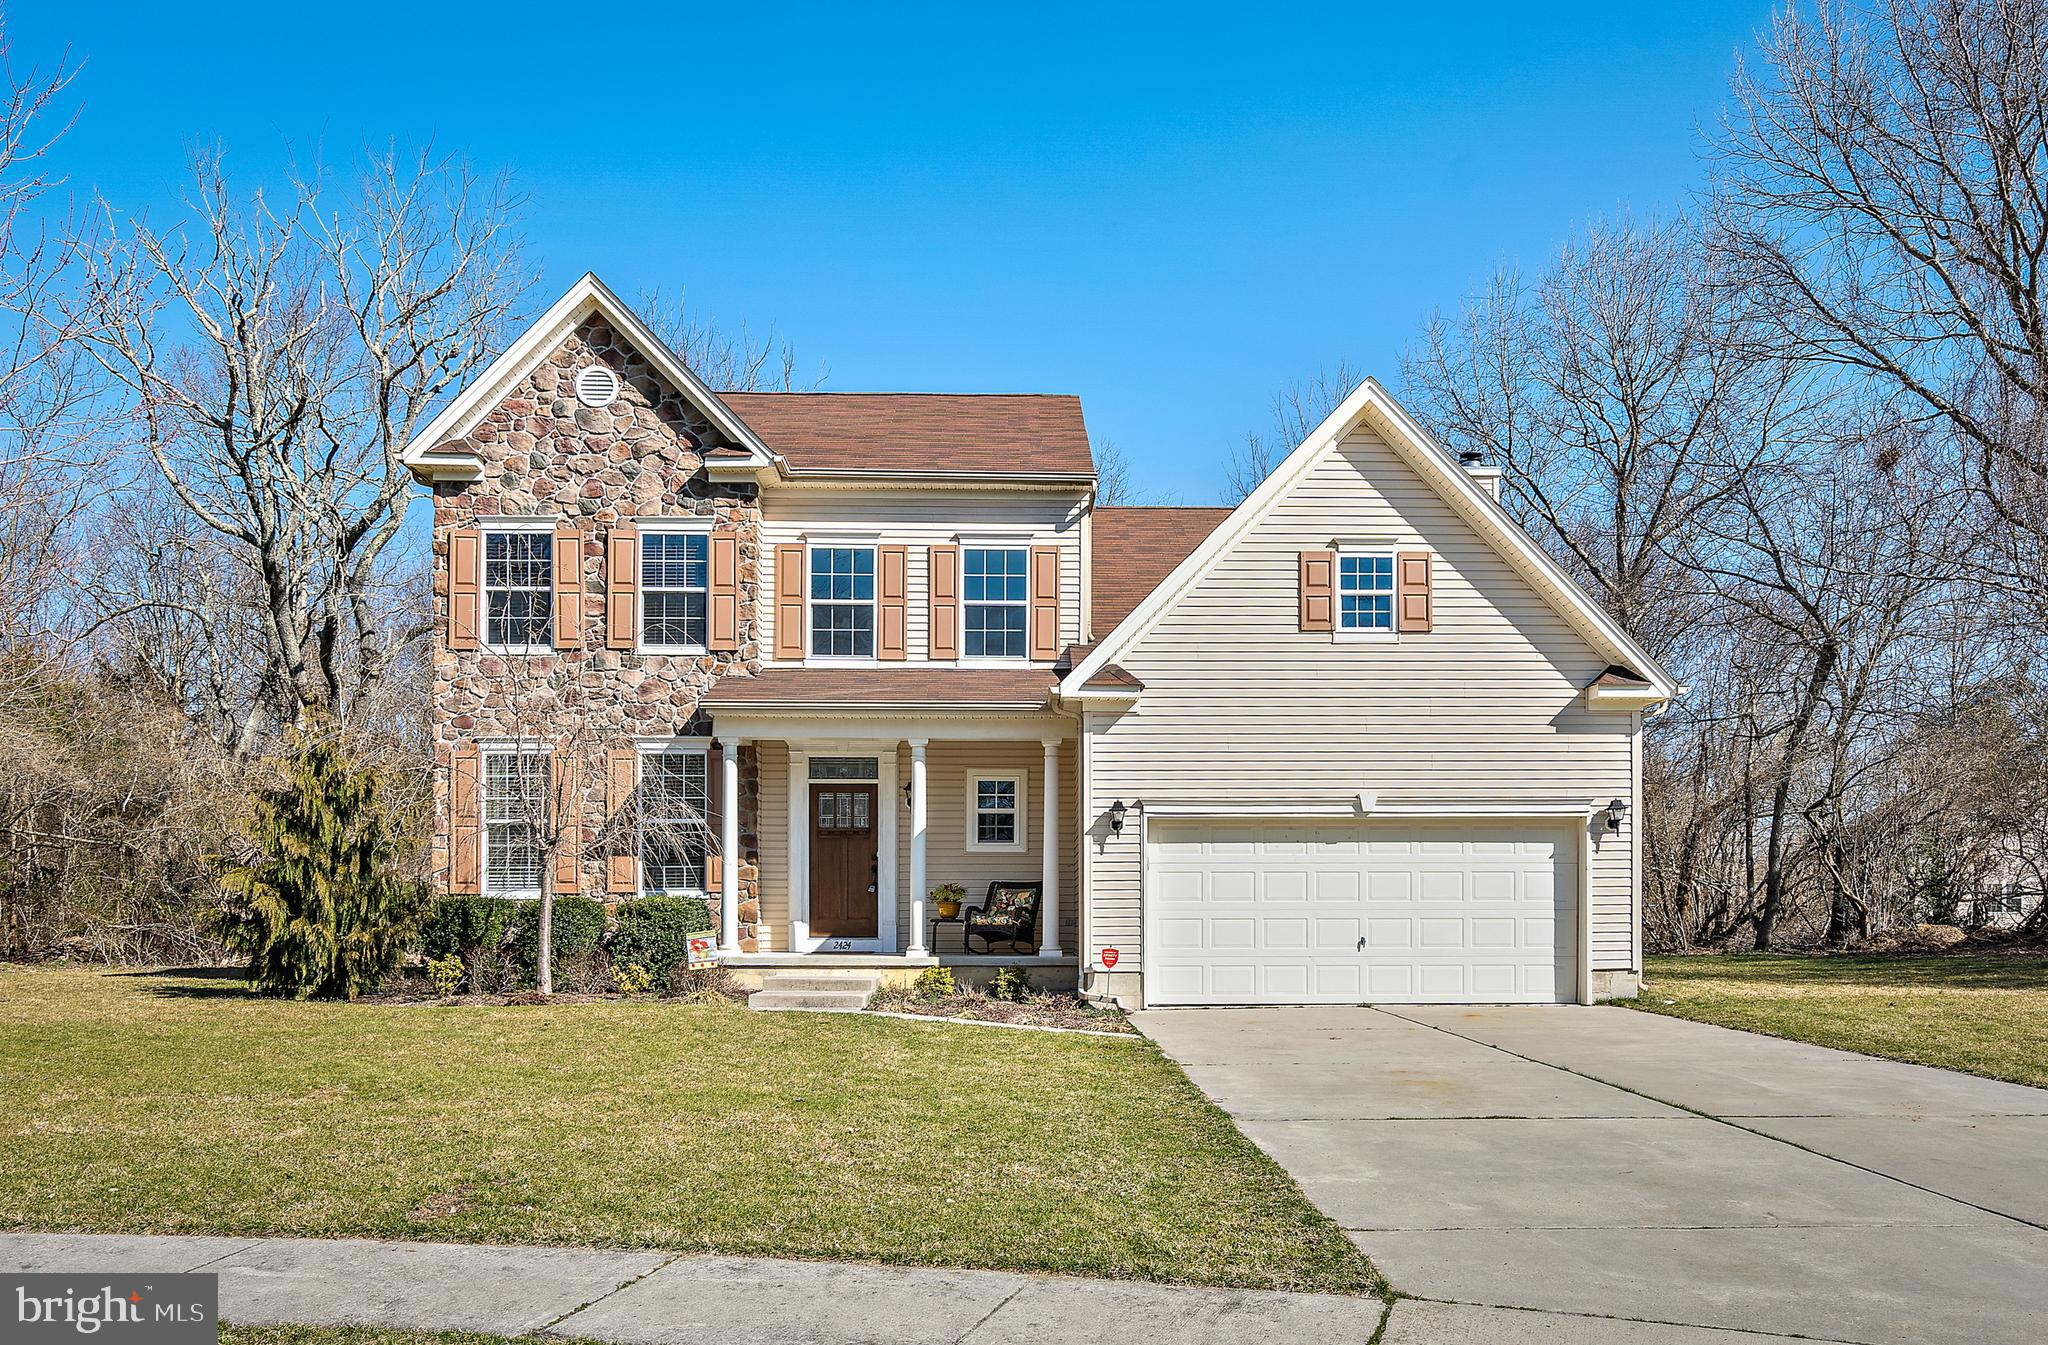 2424 LORETTA, VINELAND, NJ 08361